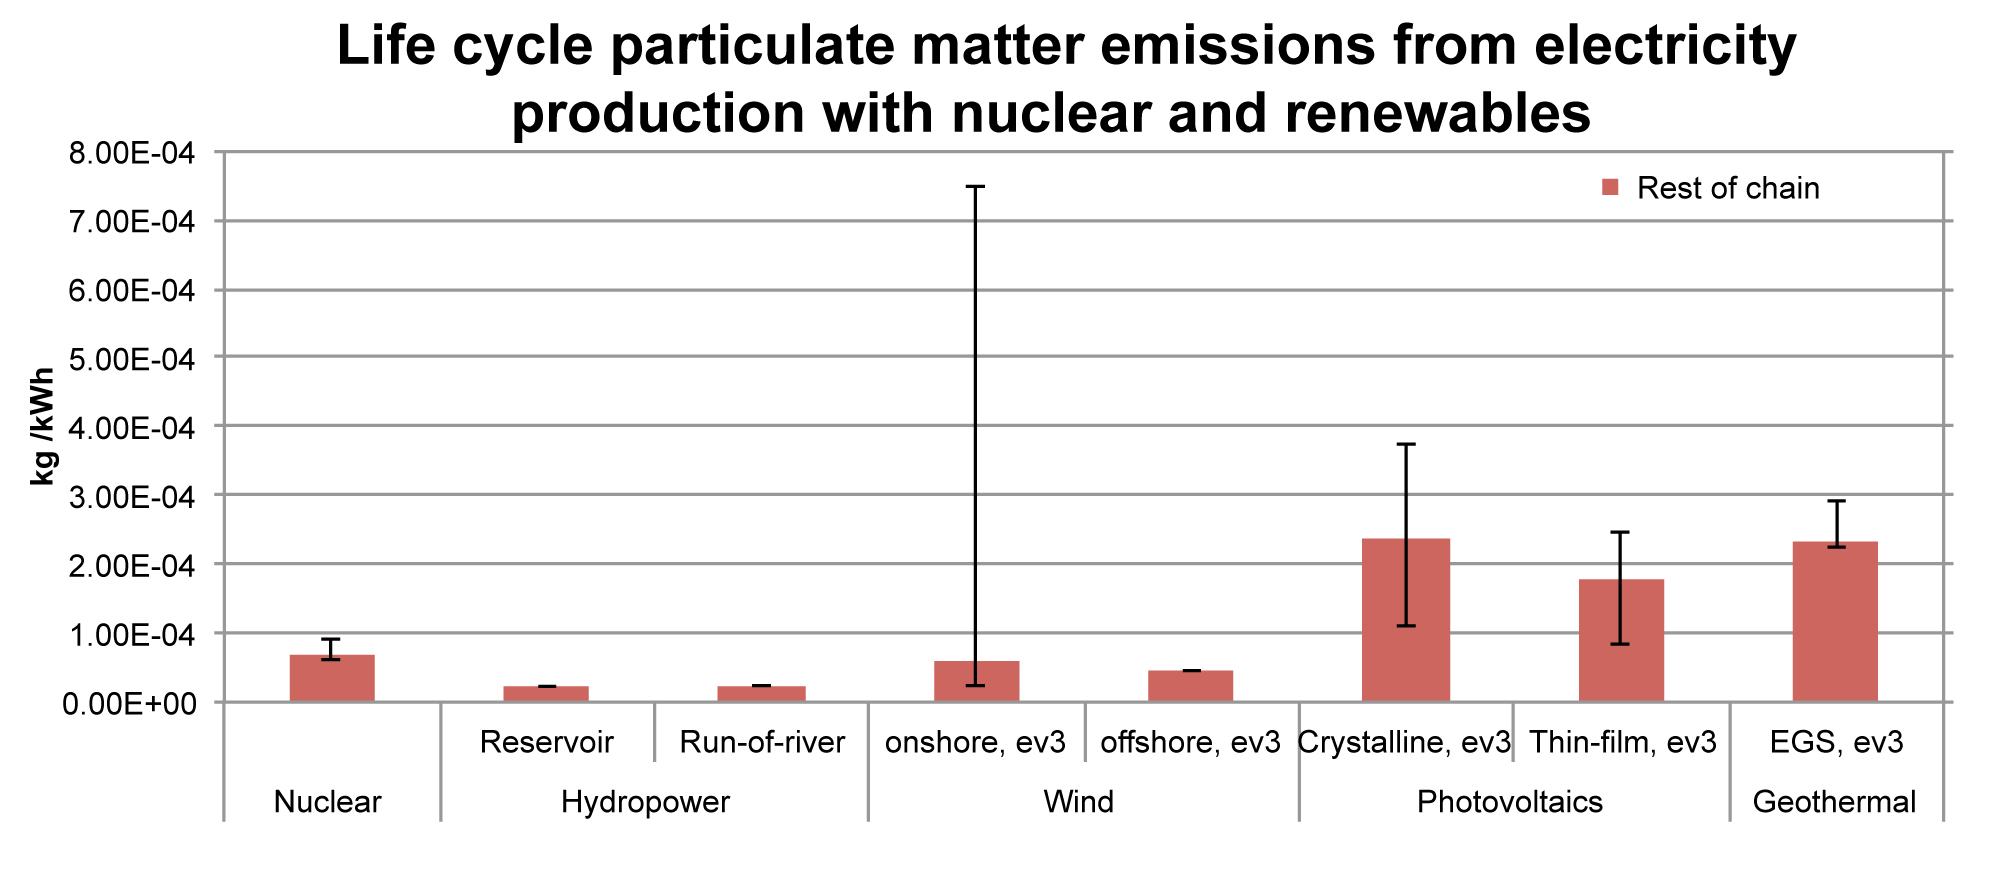 Life cycle (full chain) particulate matter emissions from electricity production with nuclear power and renewables in kg PM10-equivalents per net kWh of electricity, like Fig.2. The variation between the single countries mainly originates from differences in the production/construction of the panels/power plants.